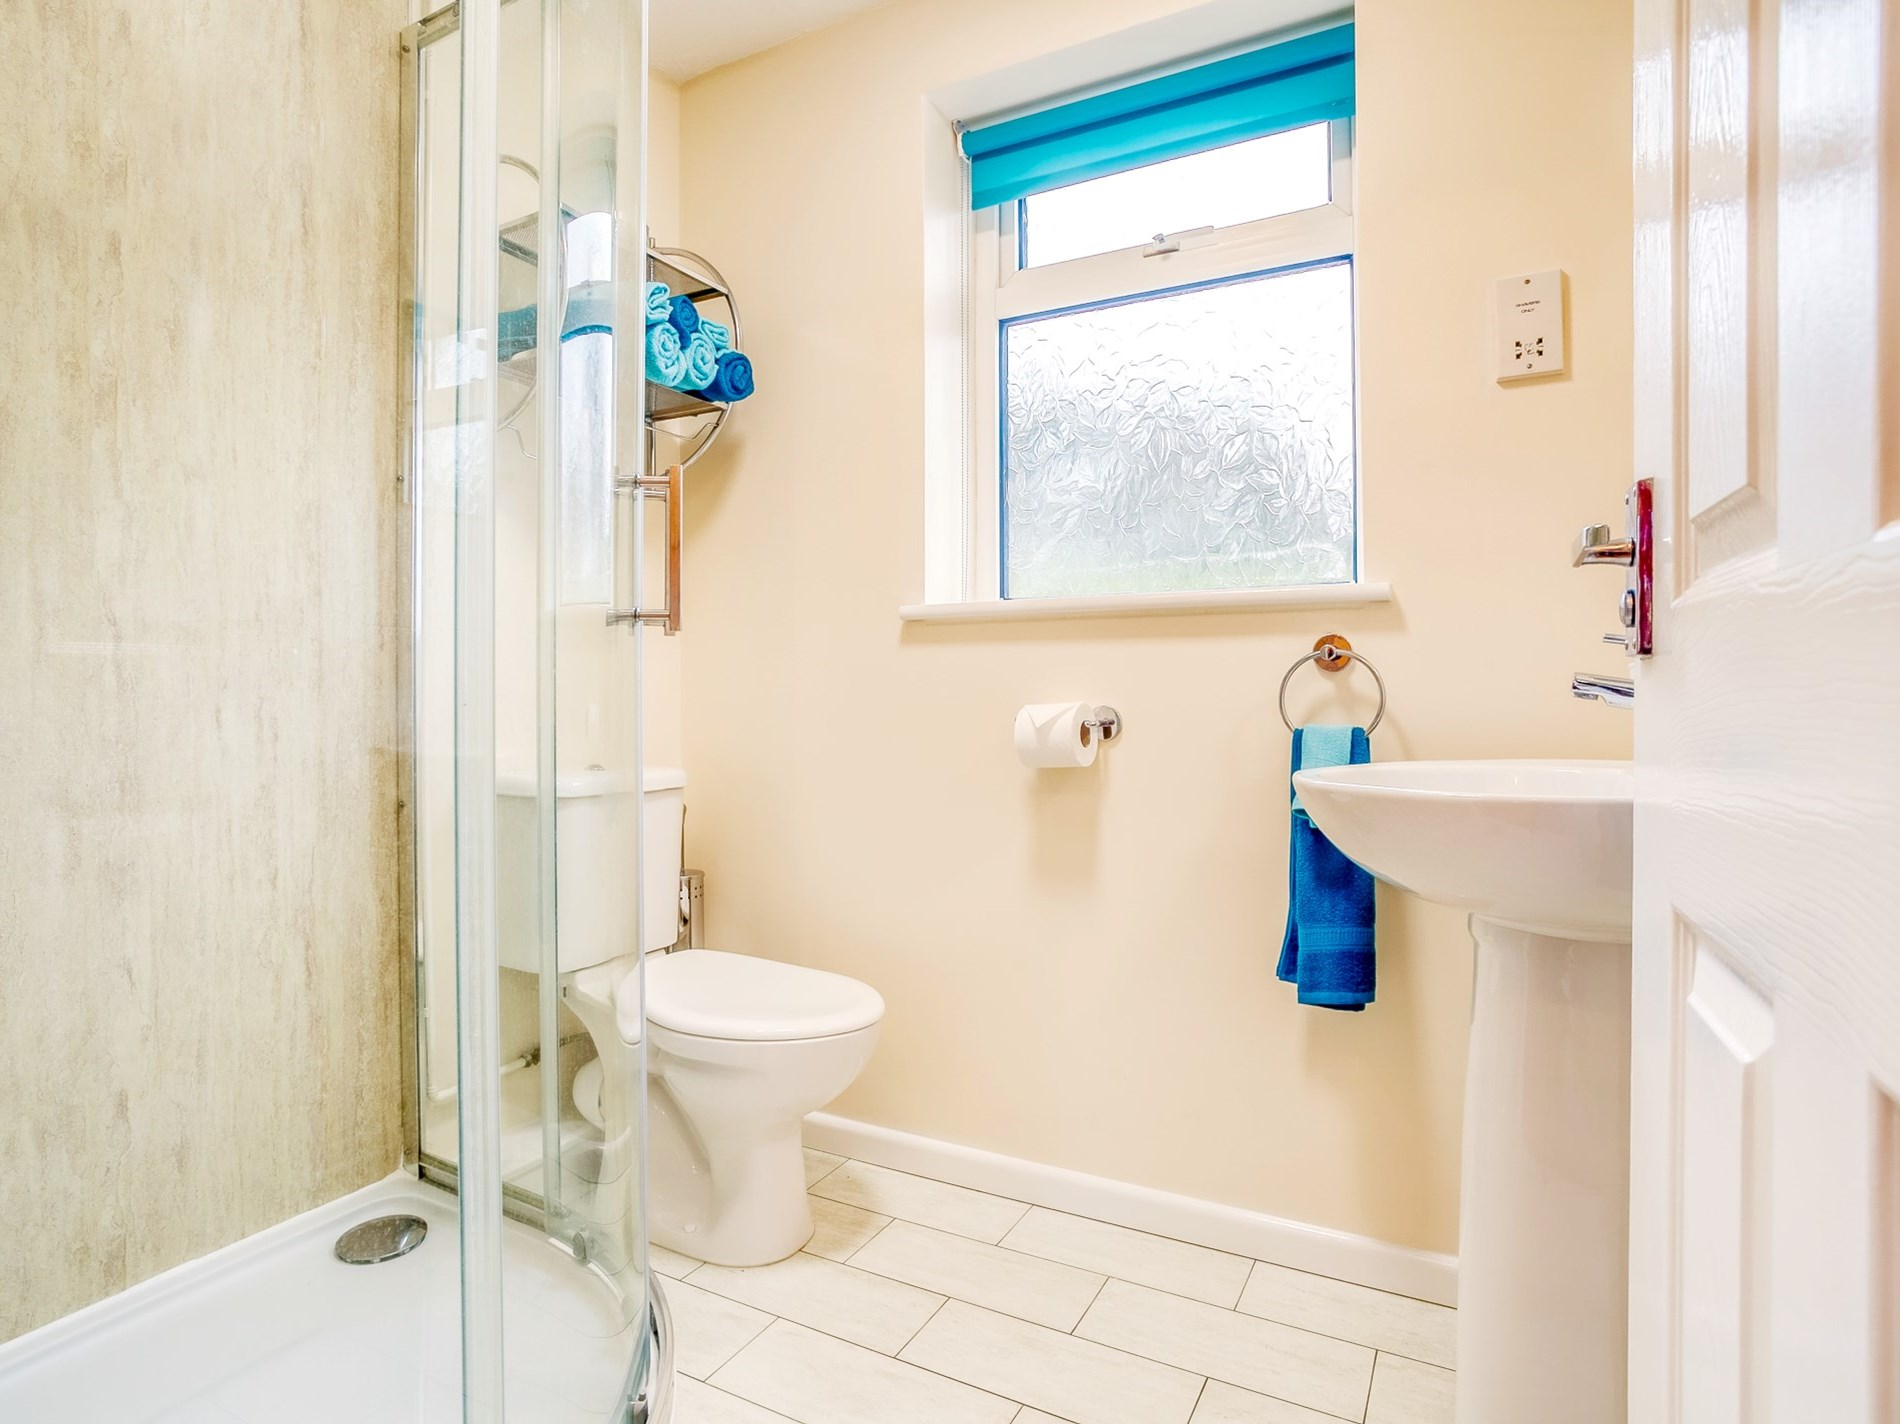 Bright and spacious shower room